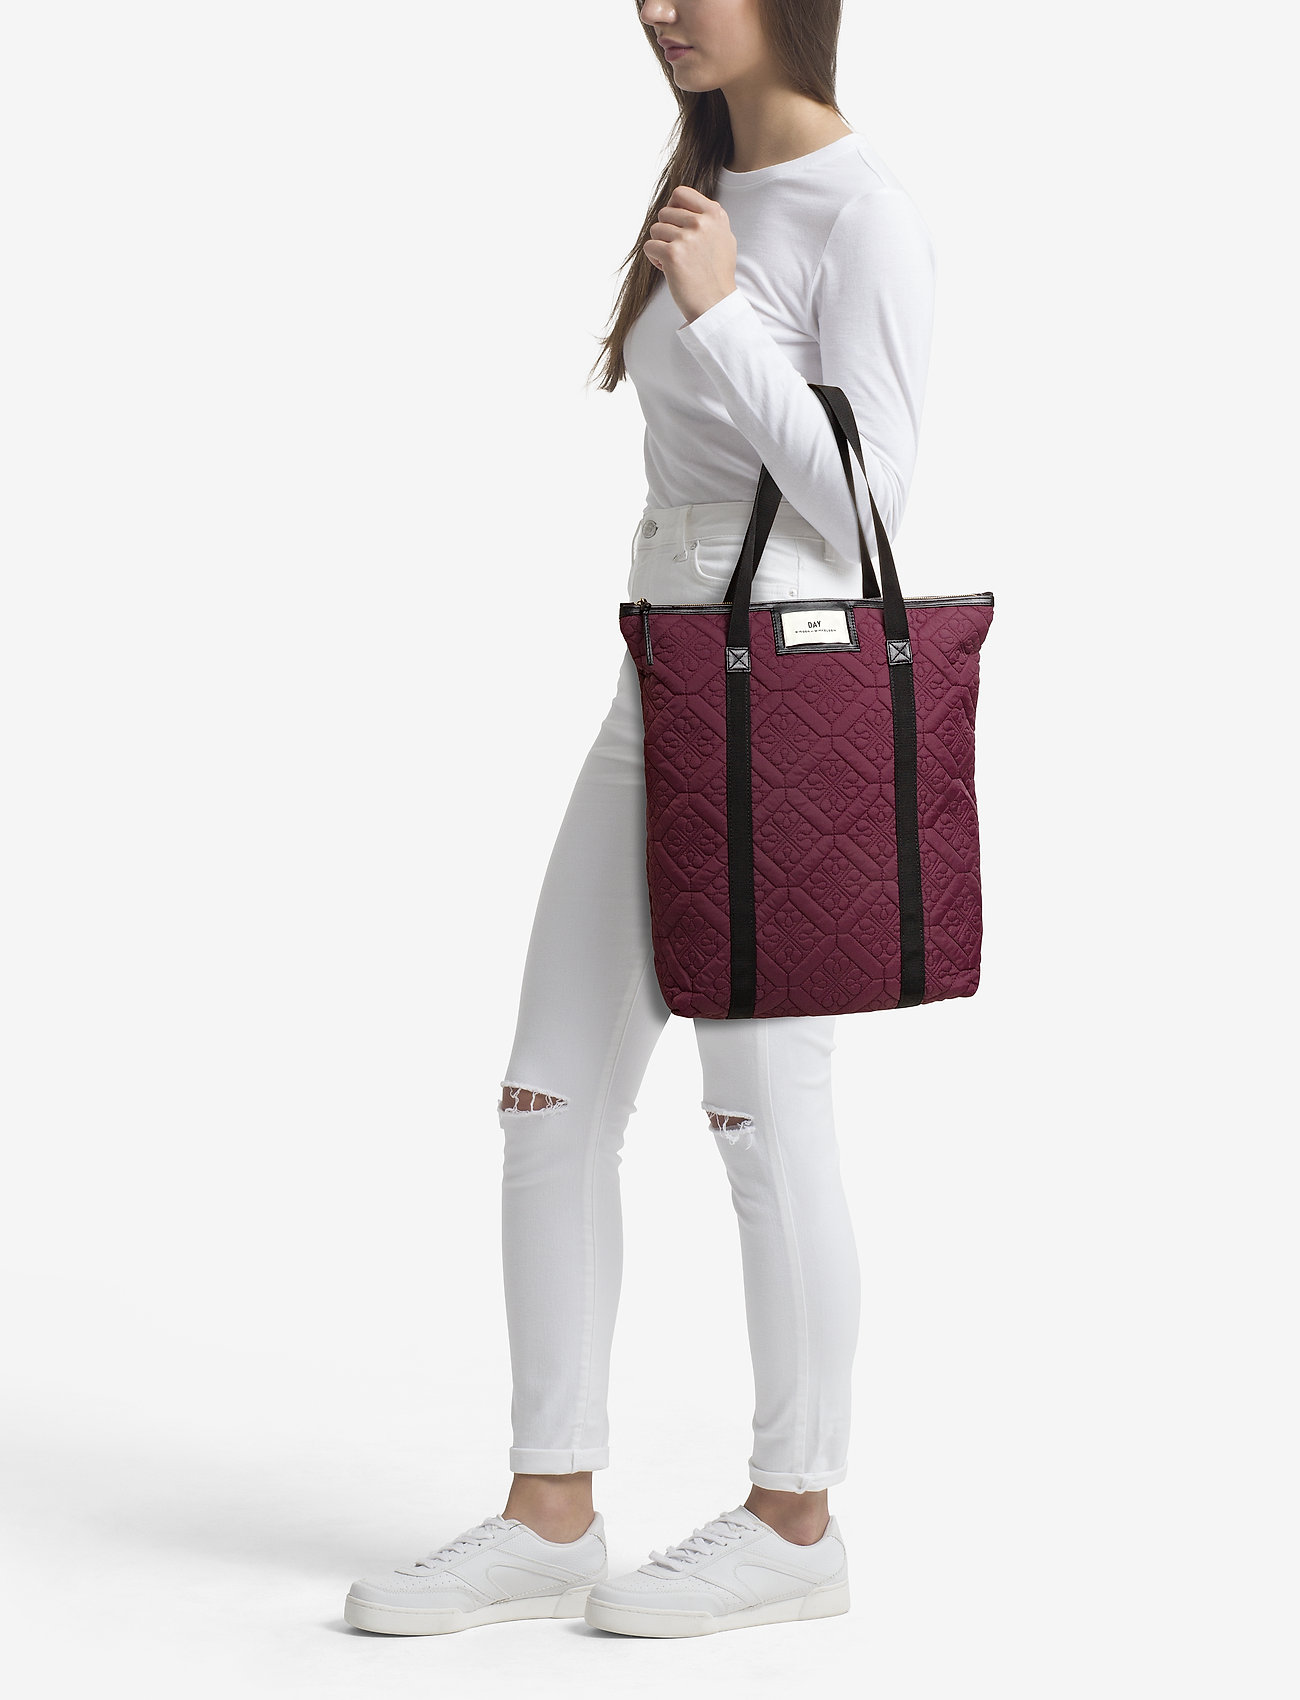 DAY et Day Gweneth Q Flotile Tote   Shoppers